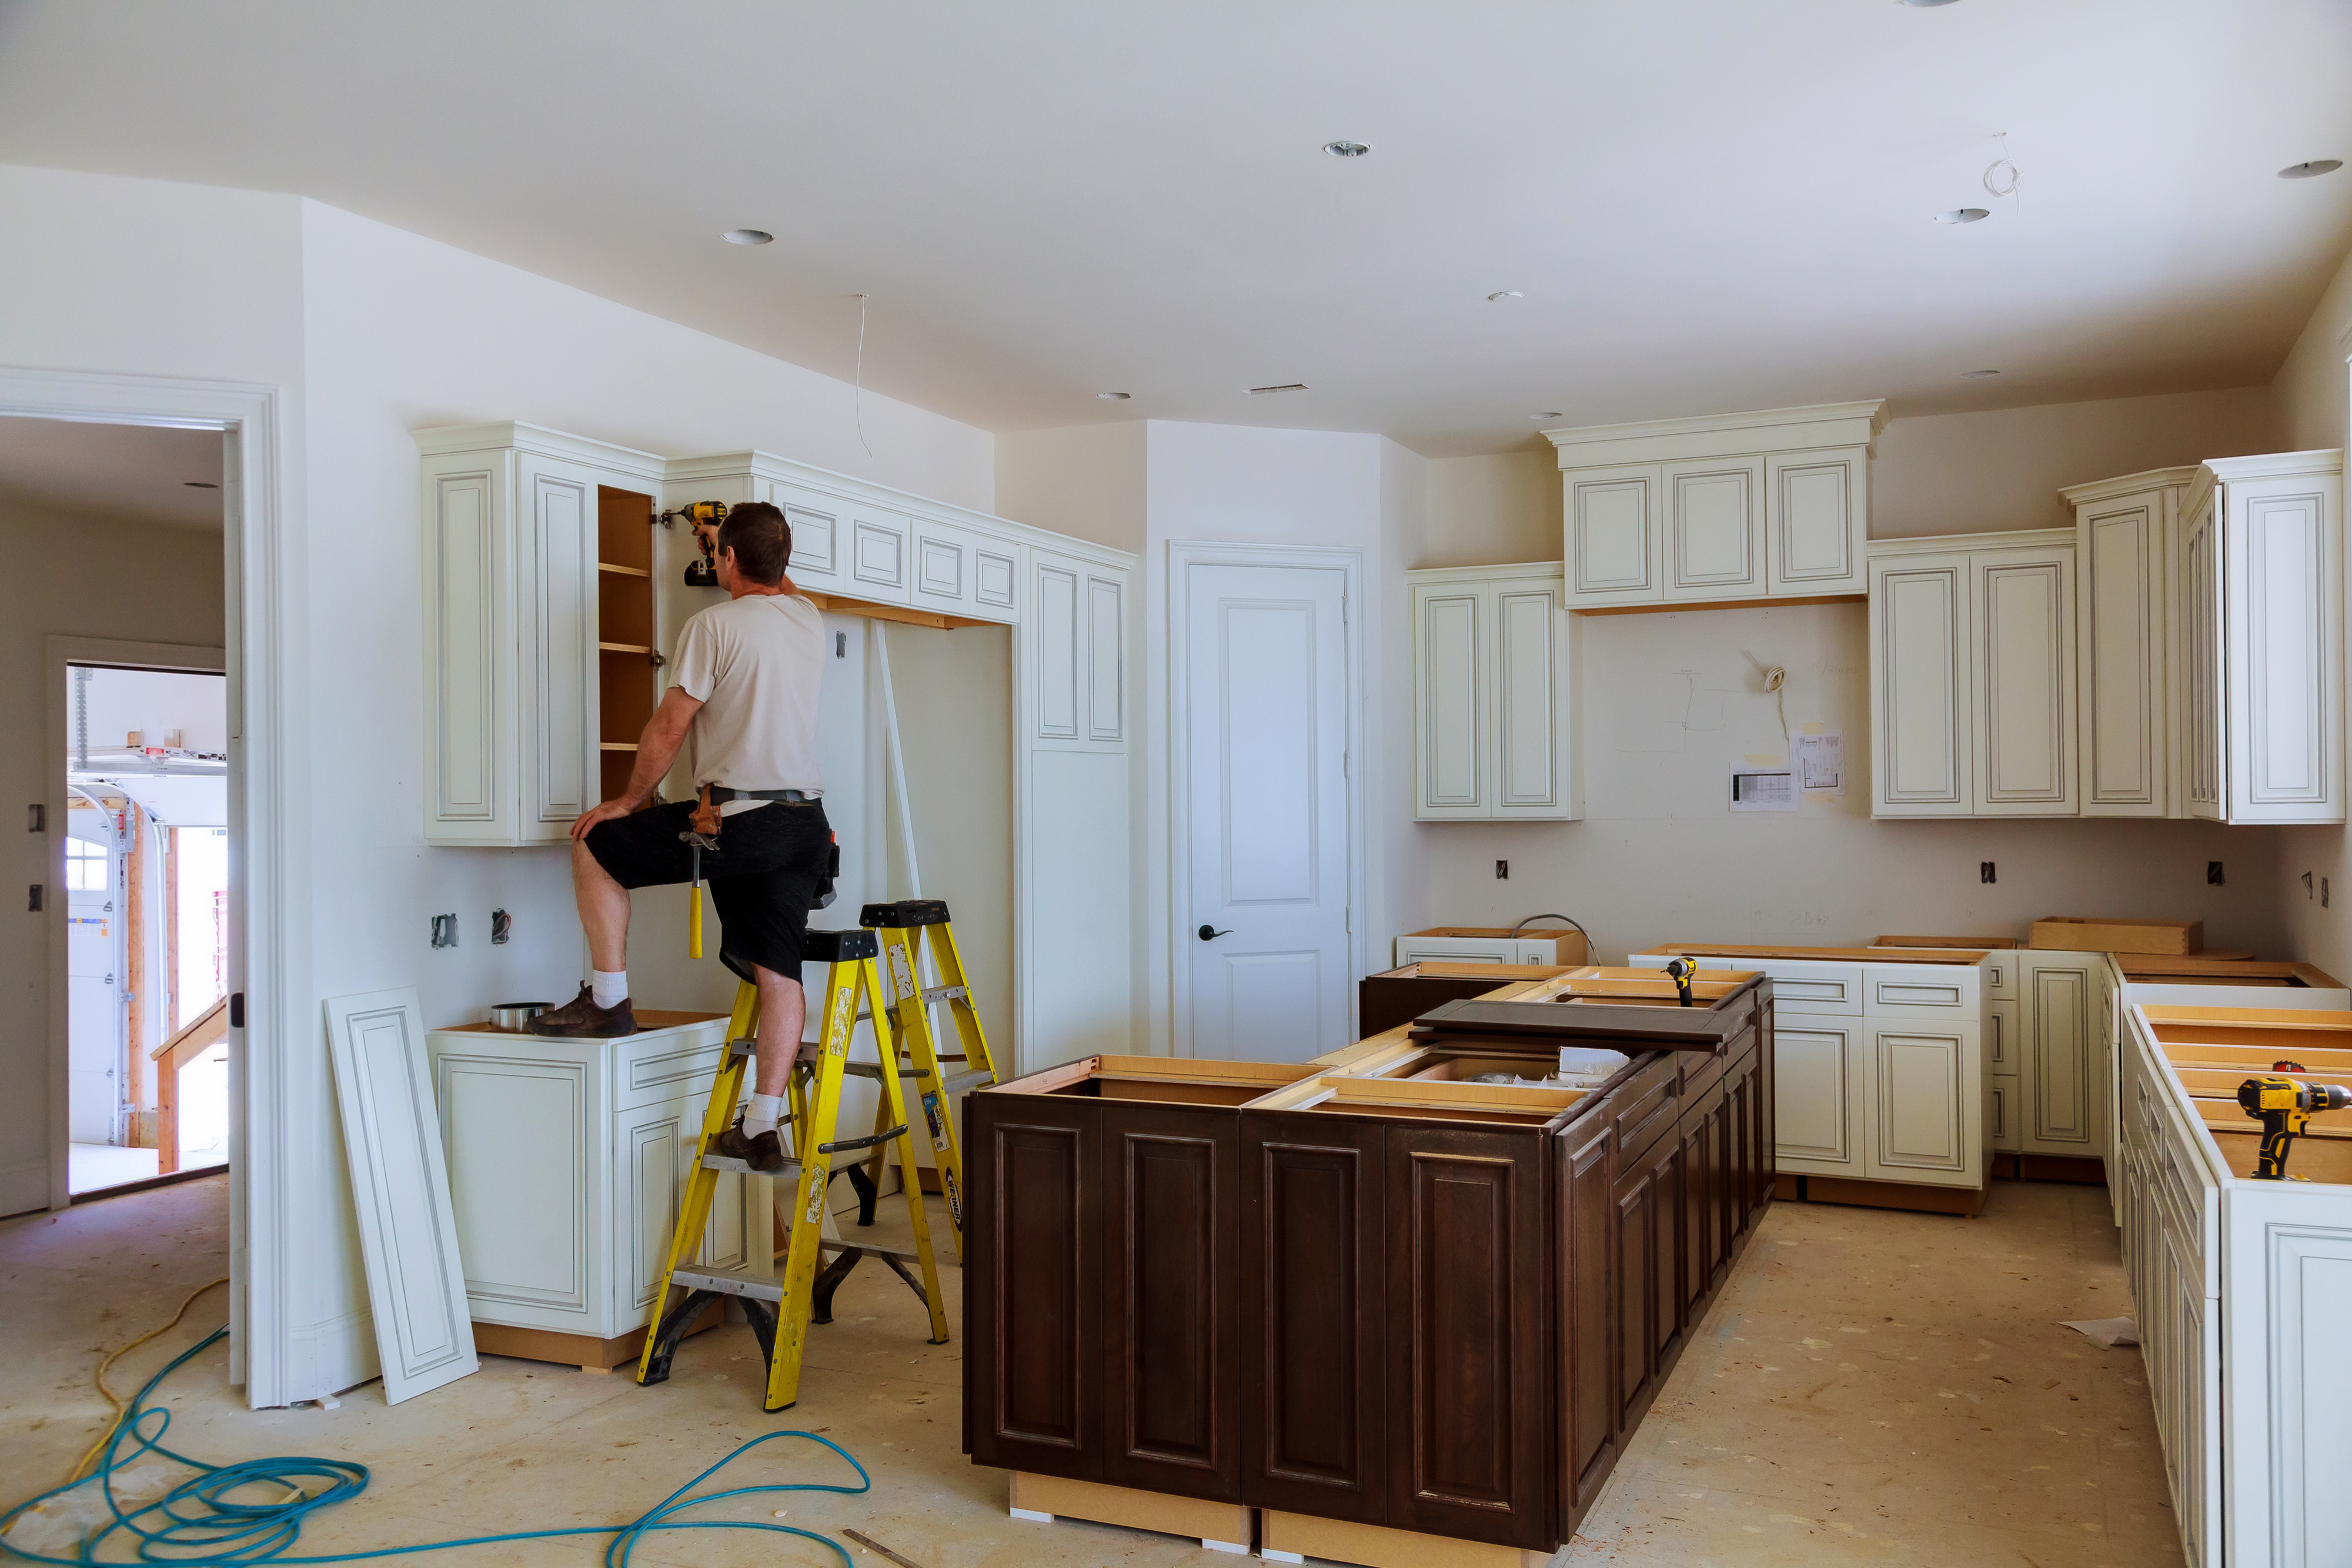 Kitchen Renovations, Remodeling and Design with Custom Cabinetry